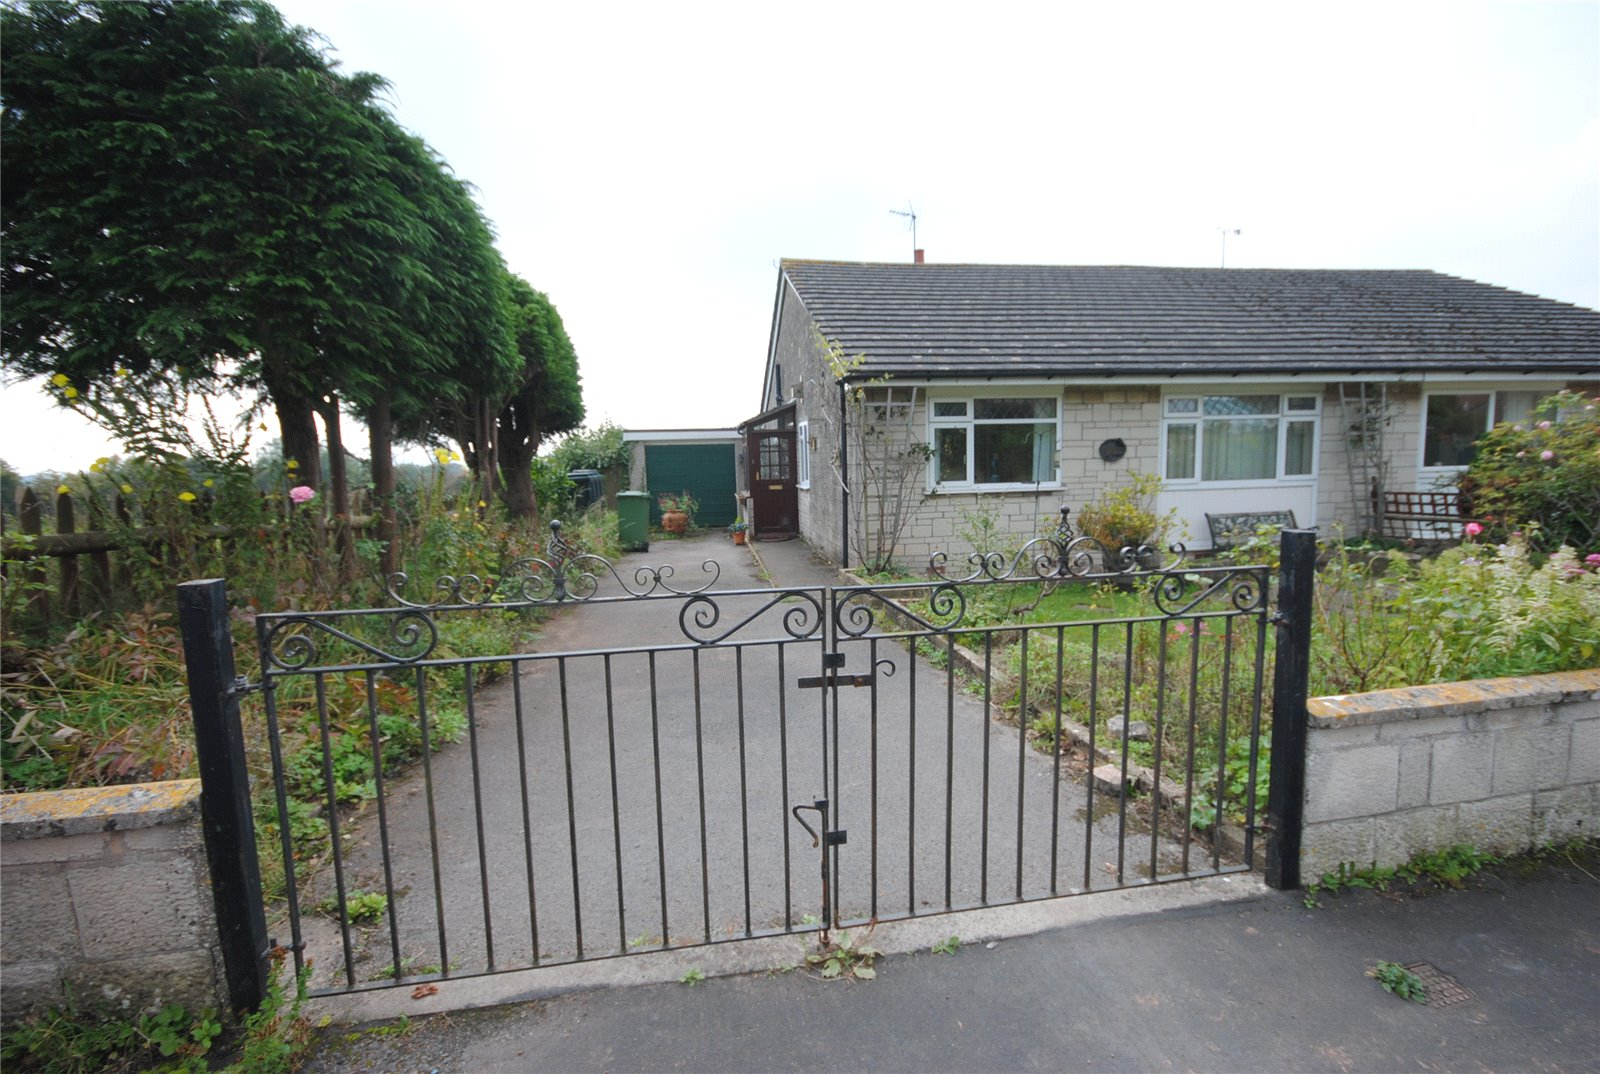 3 Bedrooms Bungalow for sale in Eastville Lane Draycott Cheddar BS27